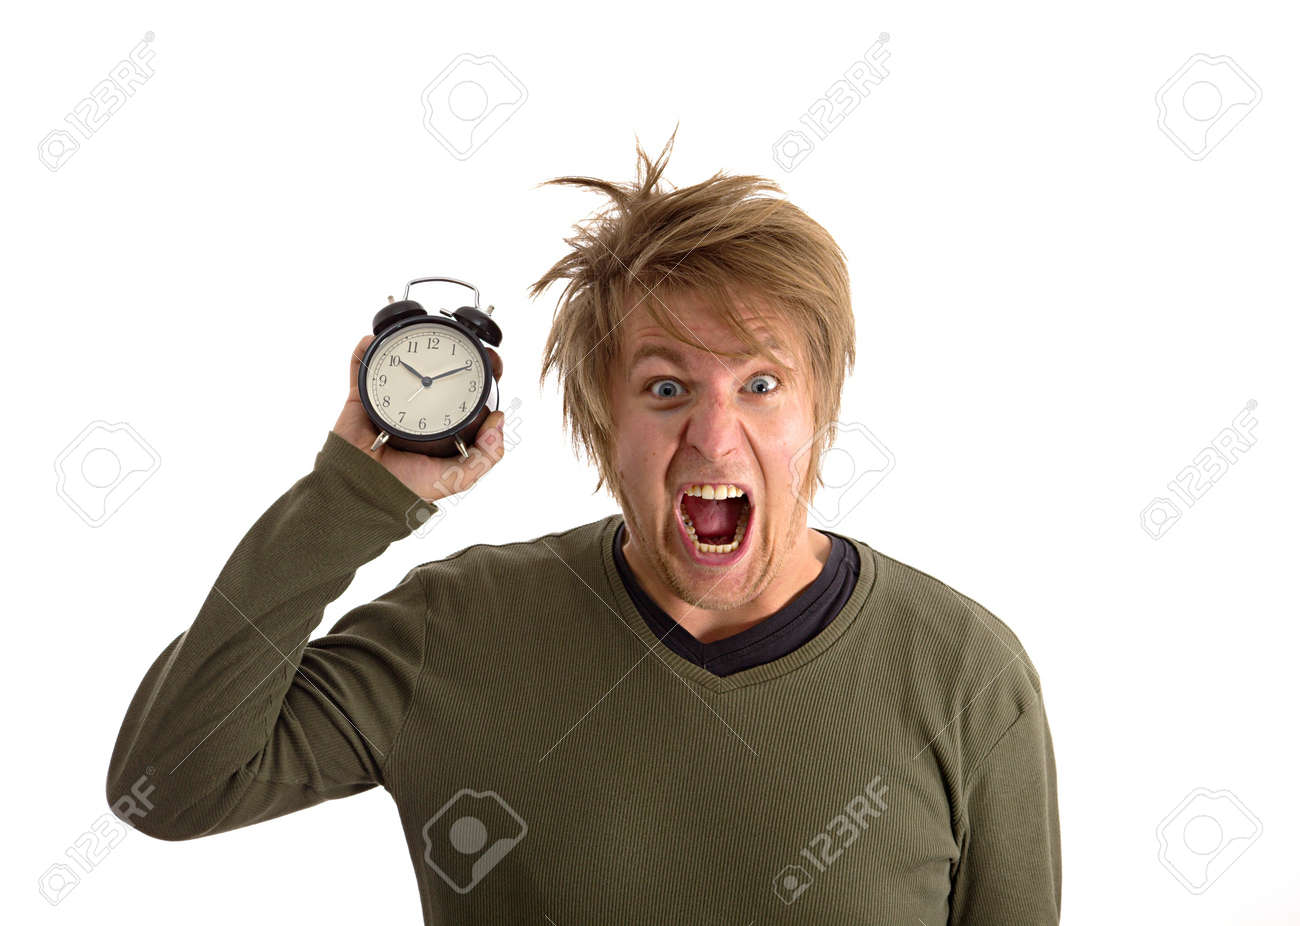 Yelling man with alarm clock in hand Stock Photo - 16640816